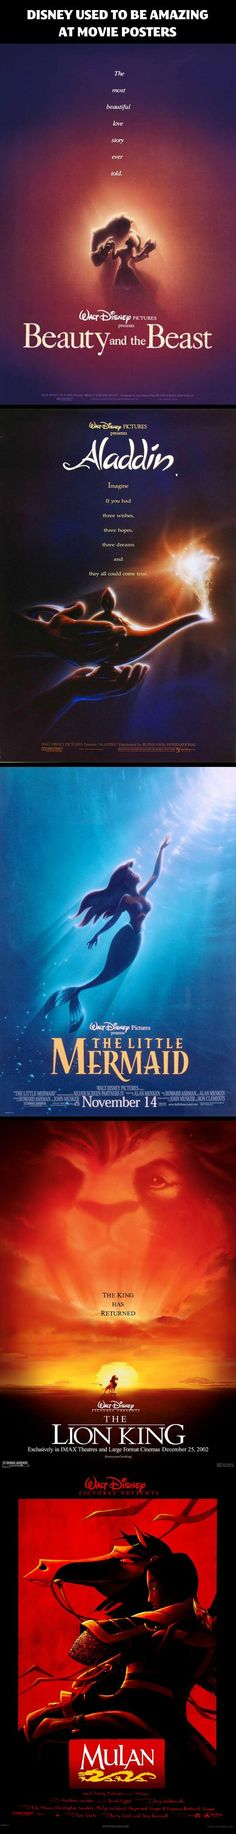 Amazing Disney Movies Posters. I want the old disney poster back.... I miss them!